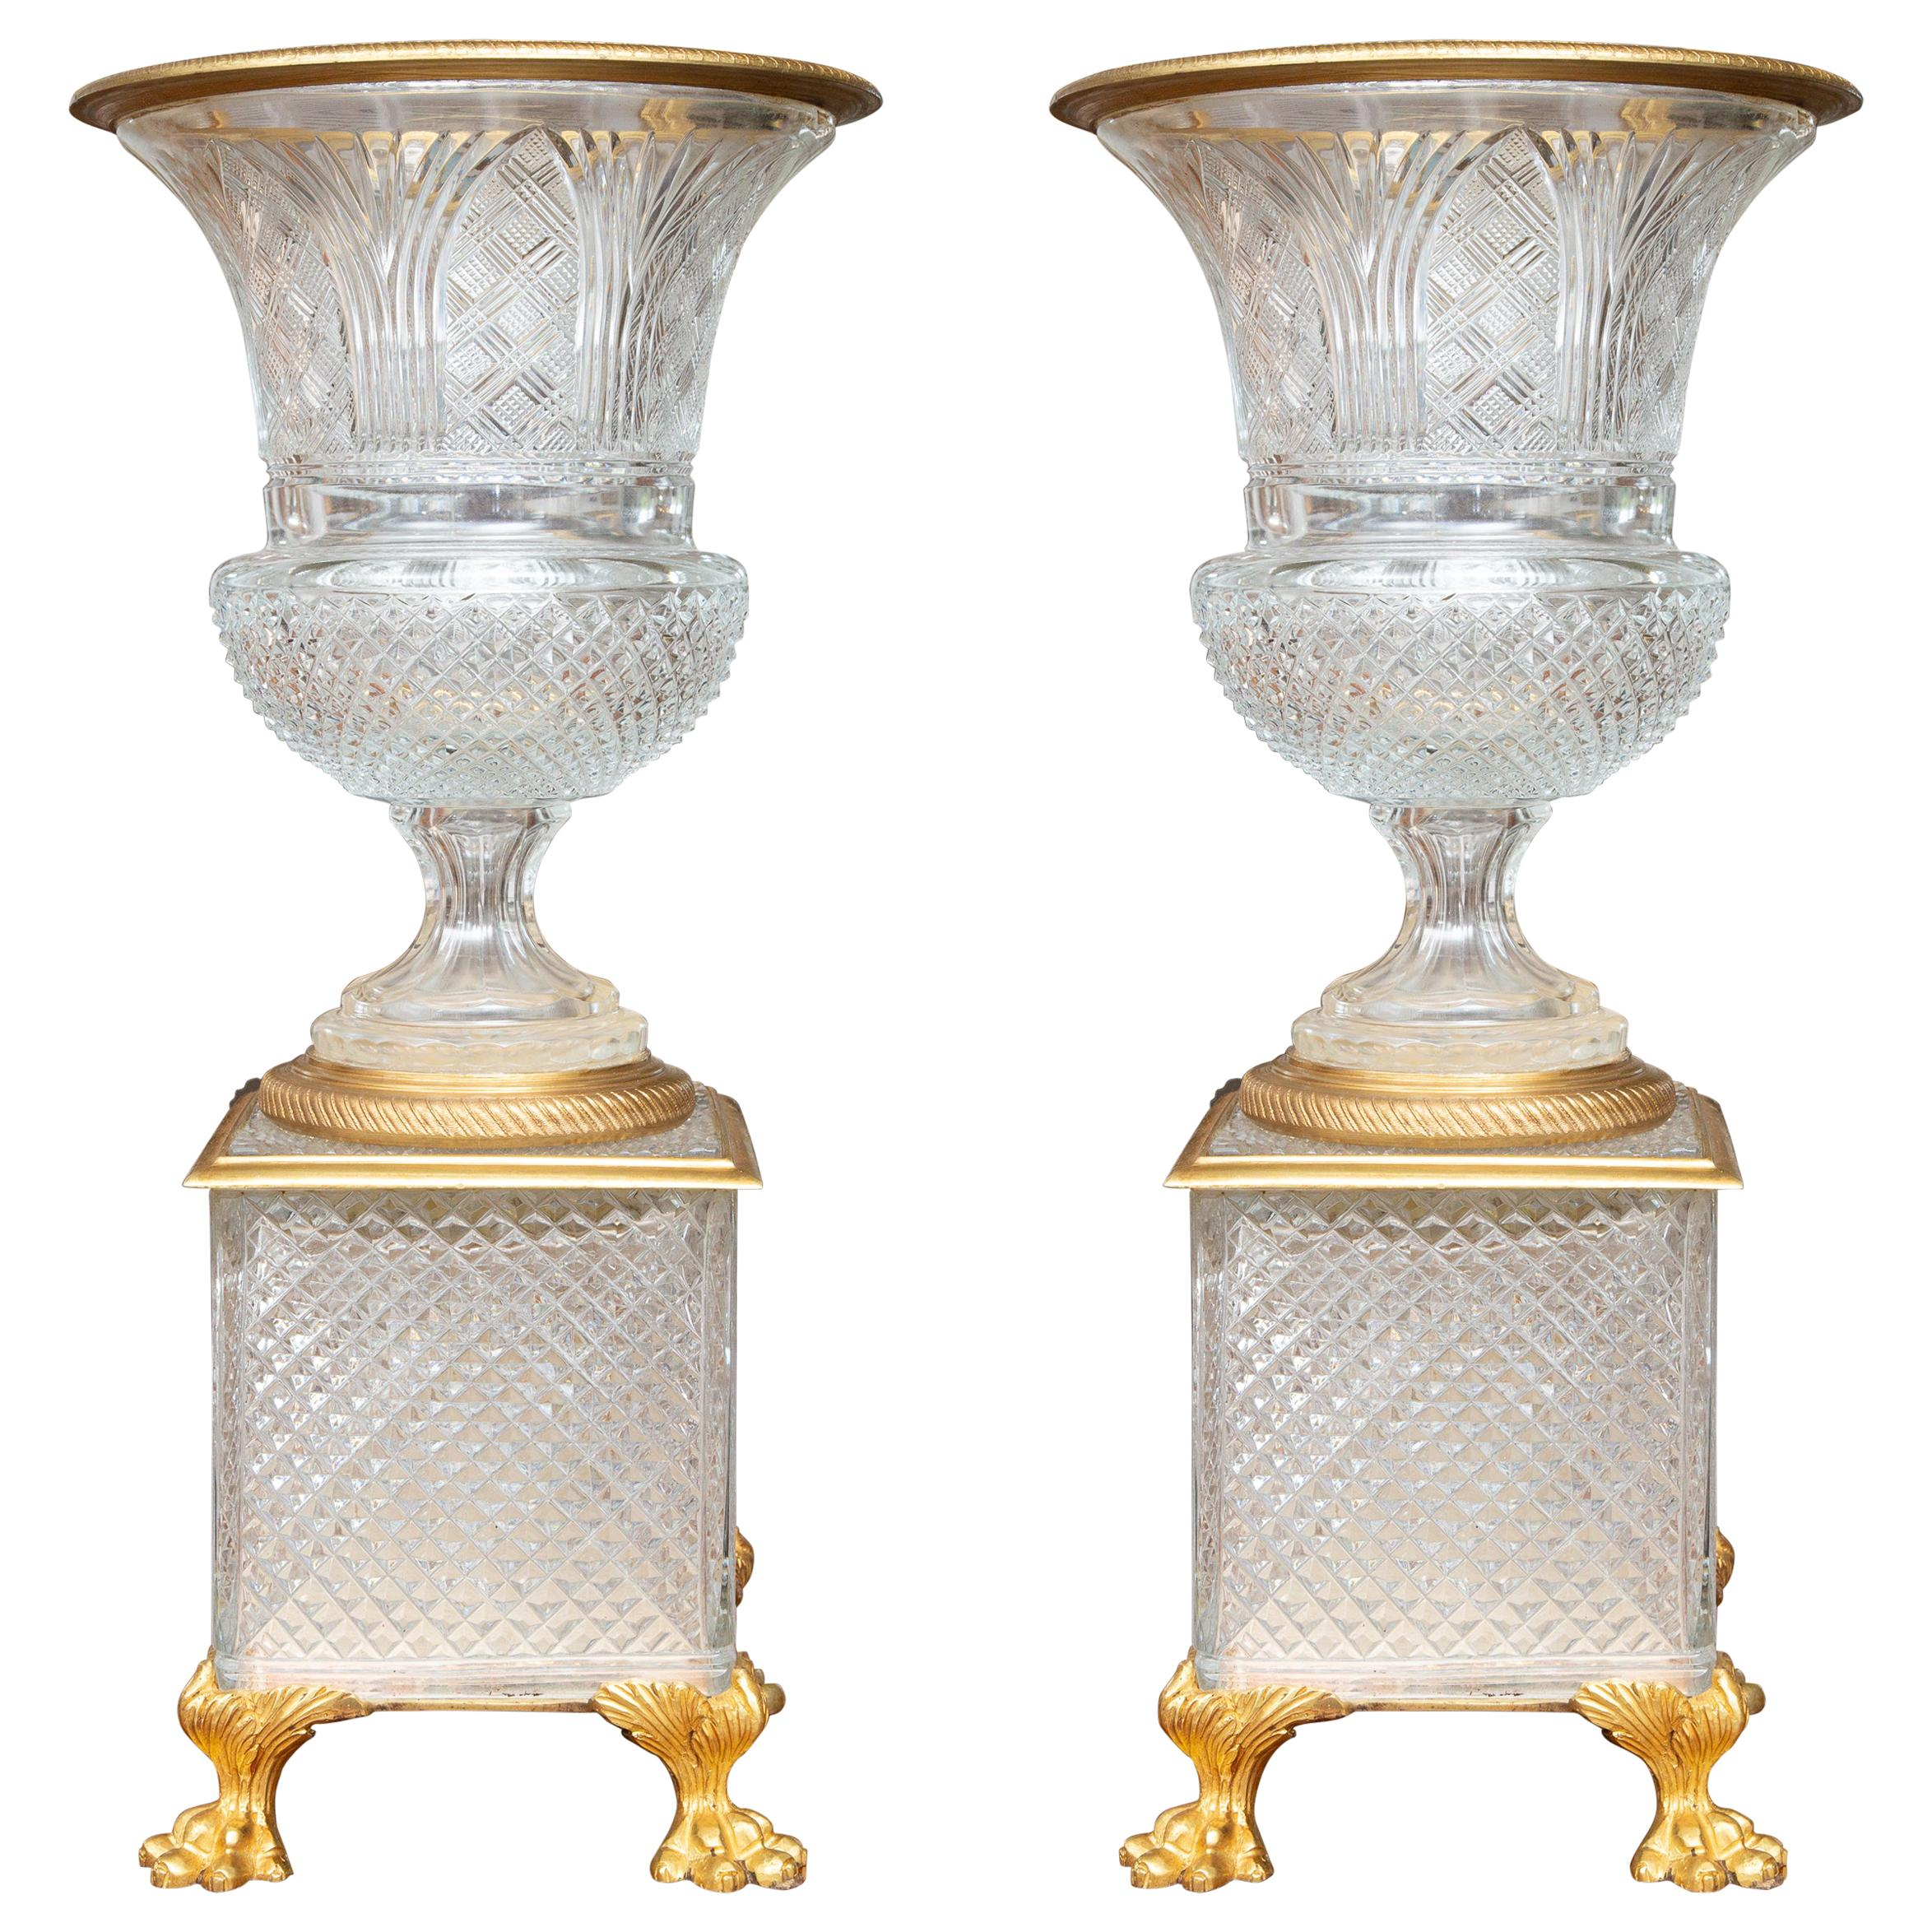 Pair of French Gilt Bronze Mounted Crystal Urns